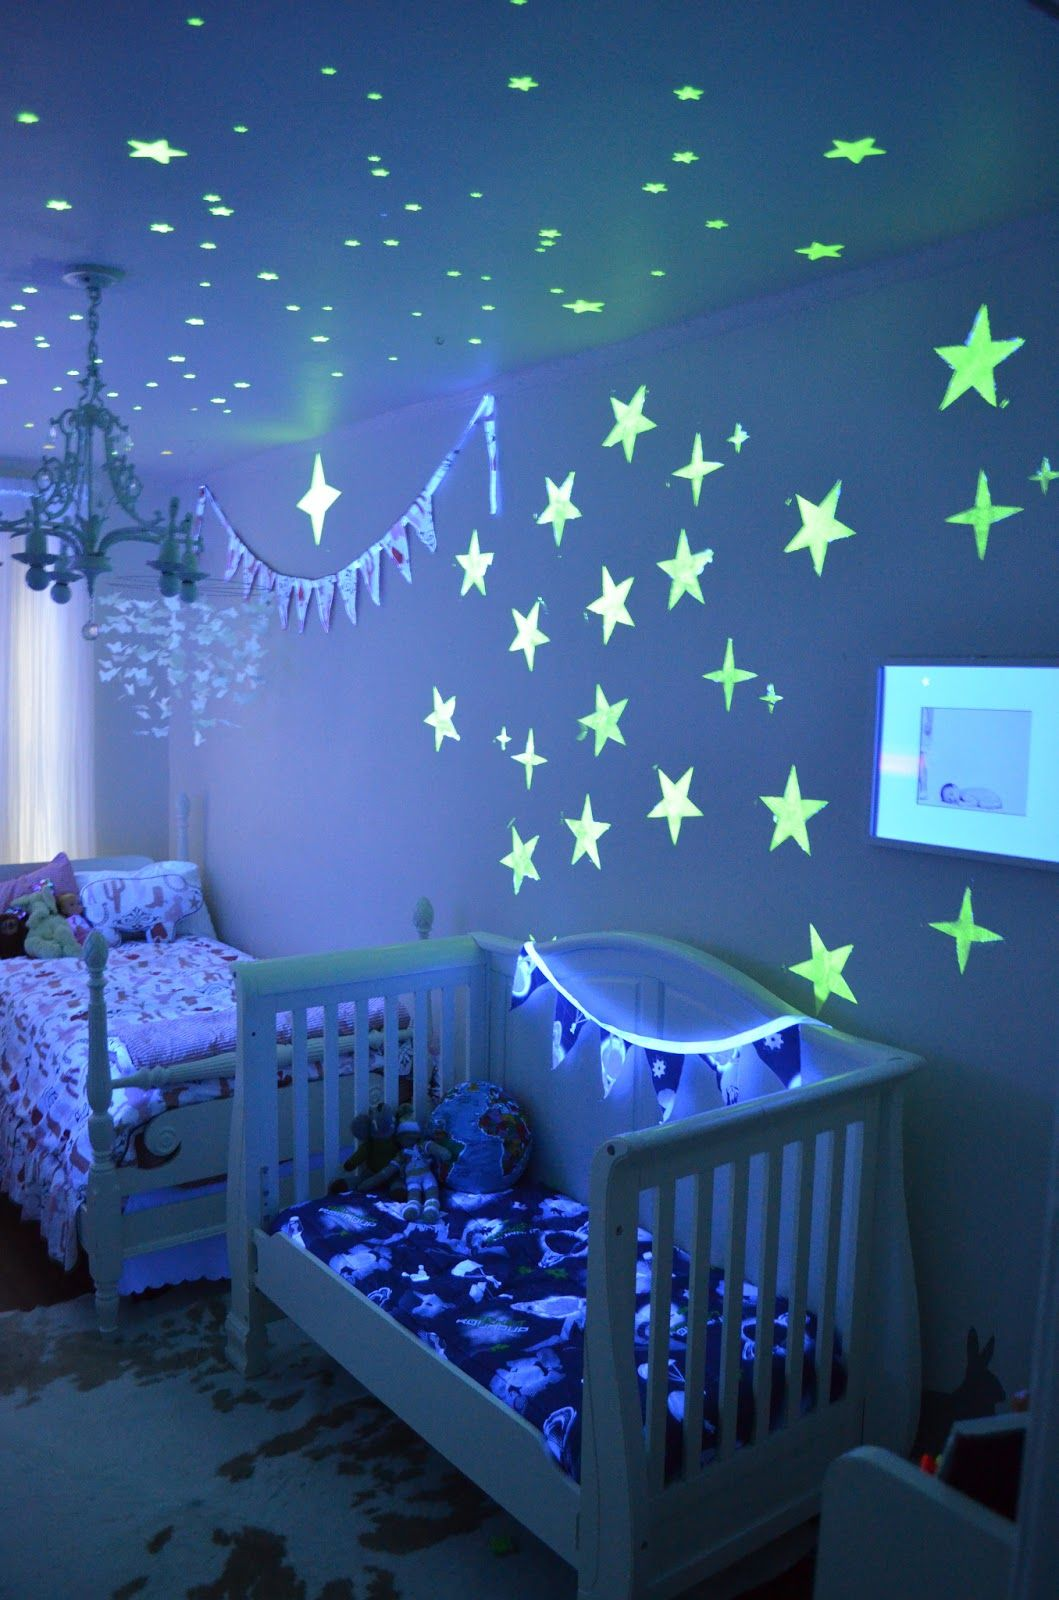 Bedroom ceiling lights stars - Dark Star